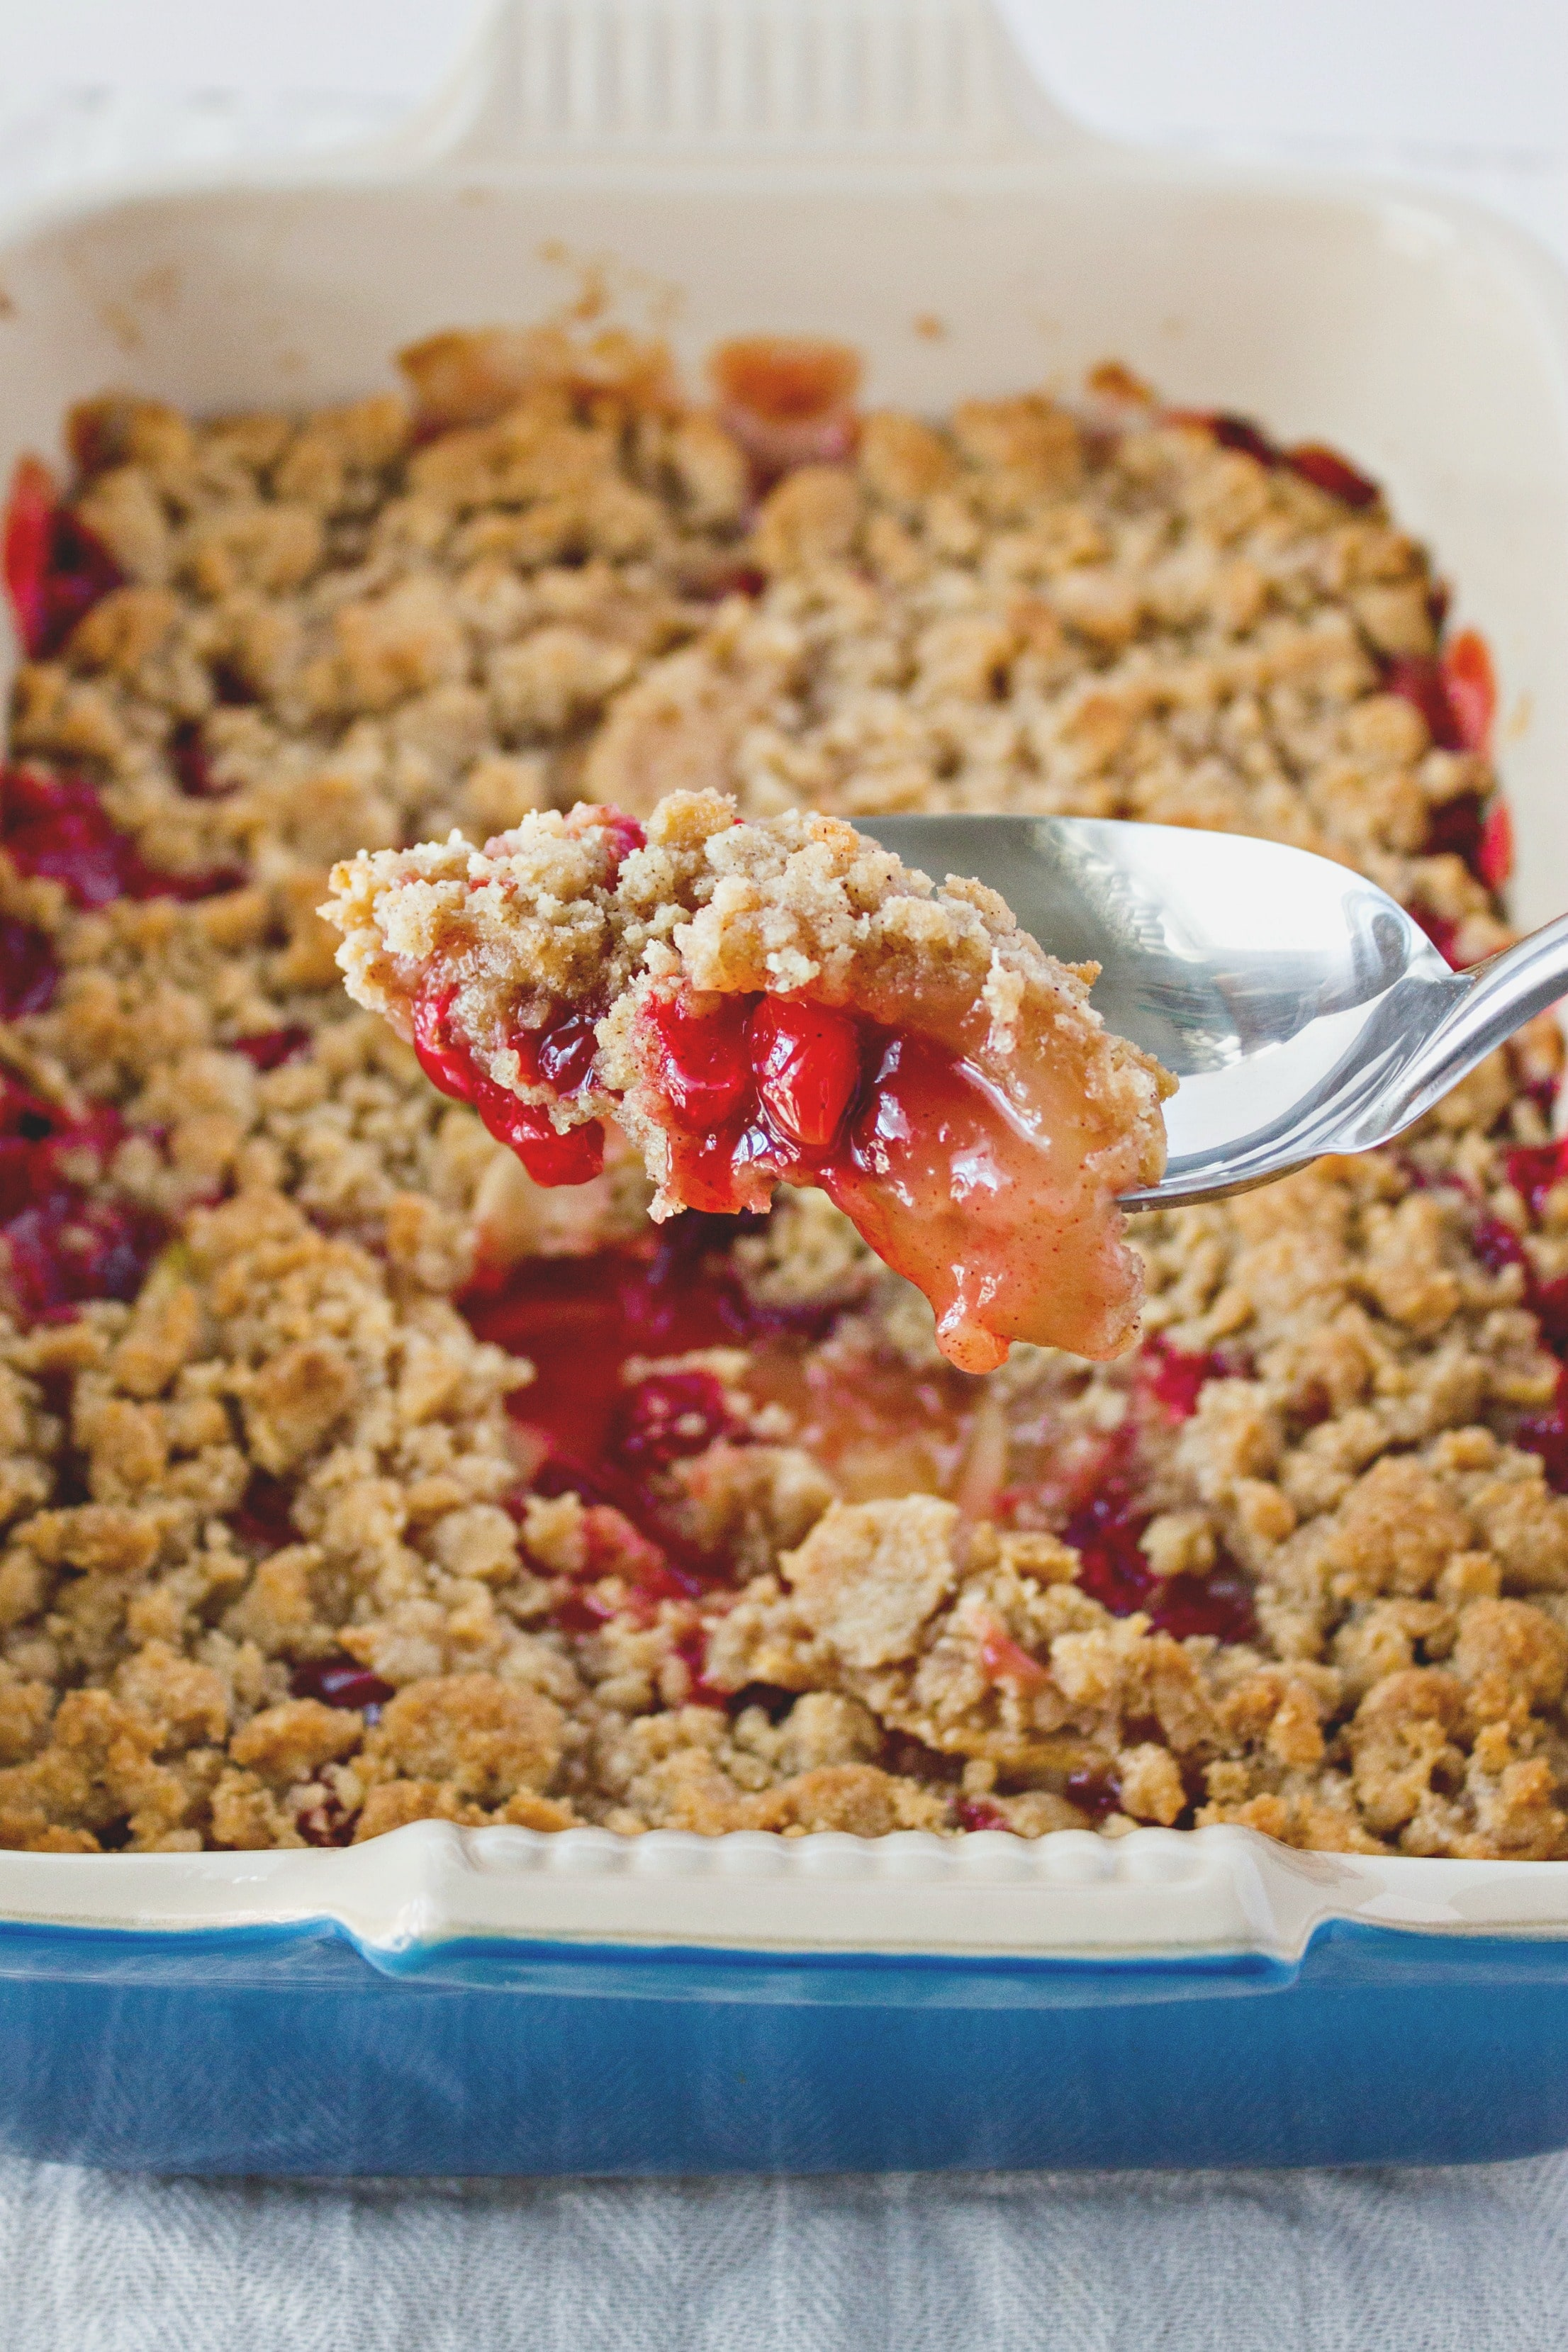 Spoonful of Cranberry Apple Crumble